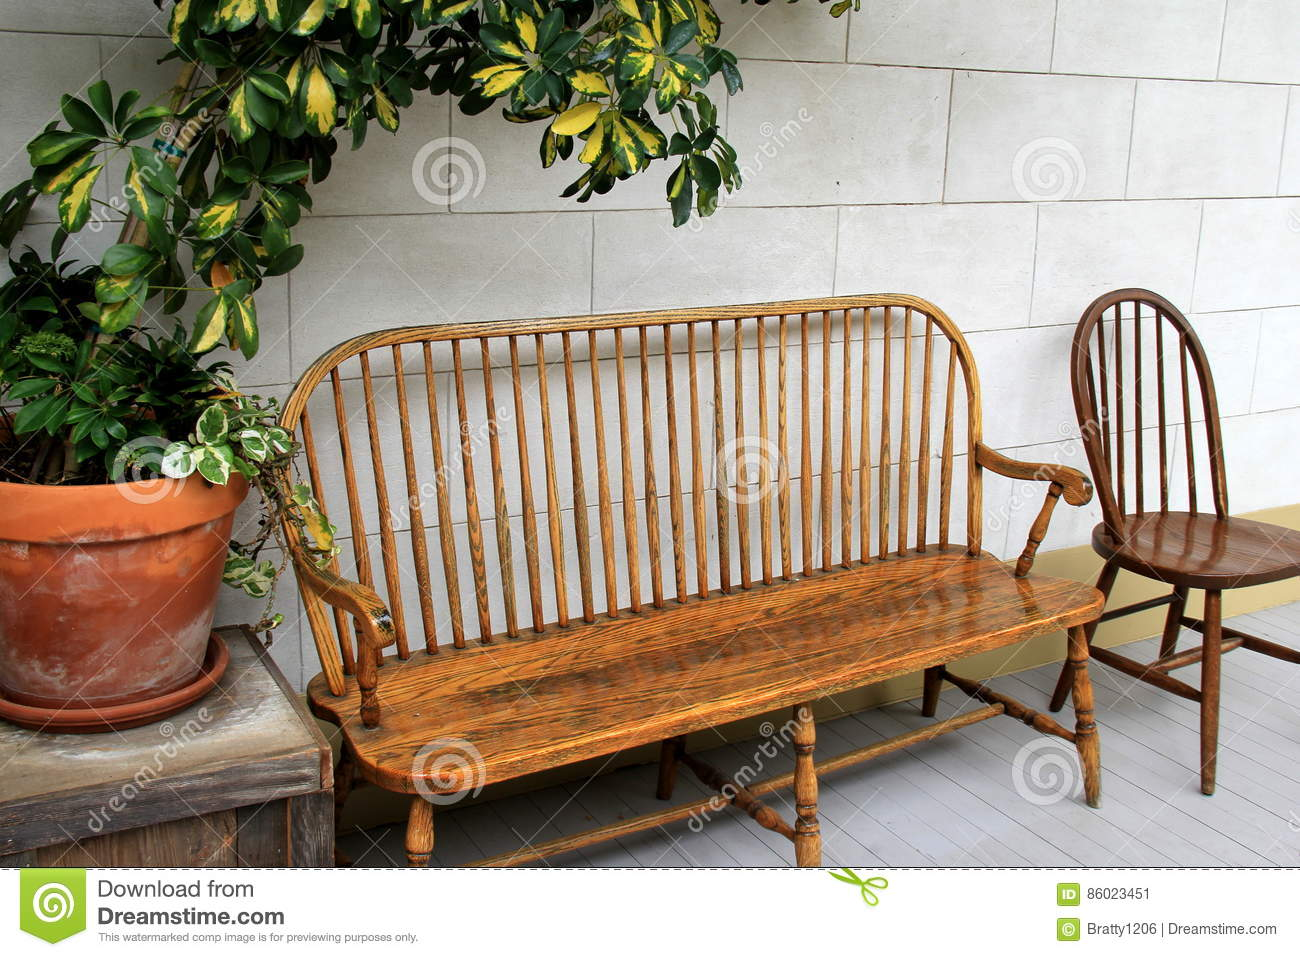 Pleasant Pretty Wood Benches And Chairs With Large Potted Plants On Caraccident5 Cool Chair Designs And Ideas Caraccident5Info